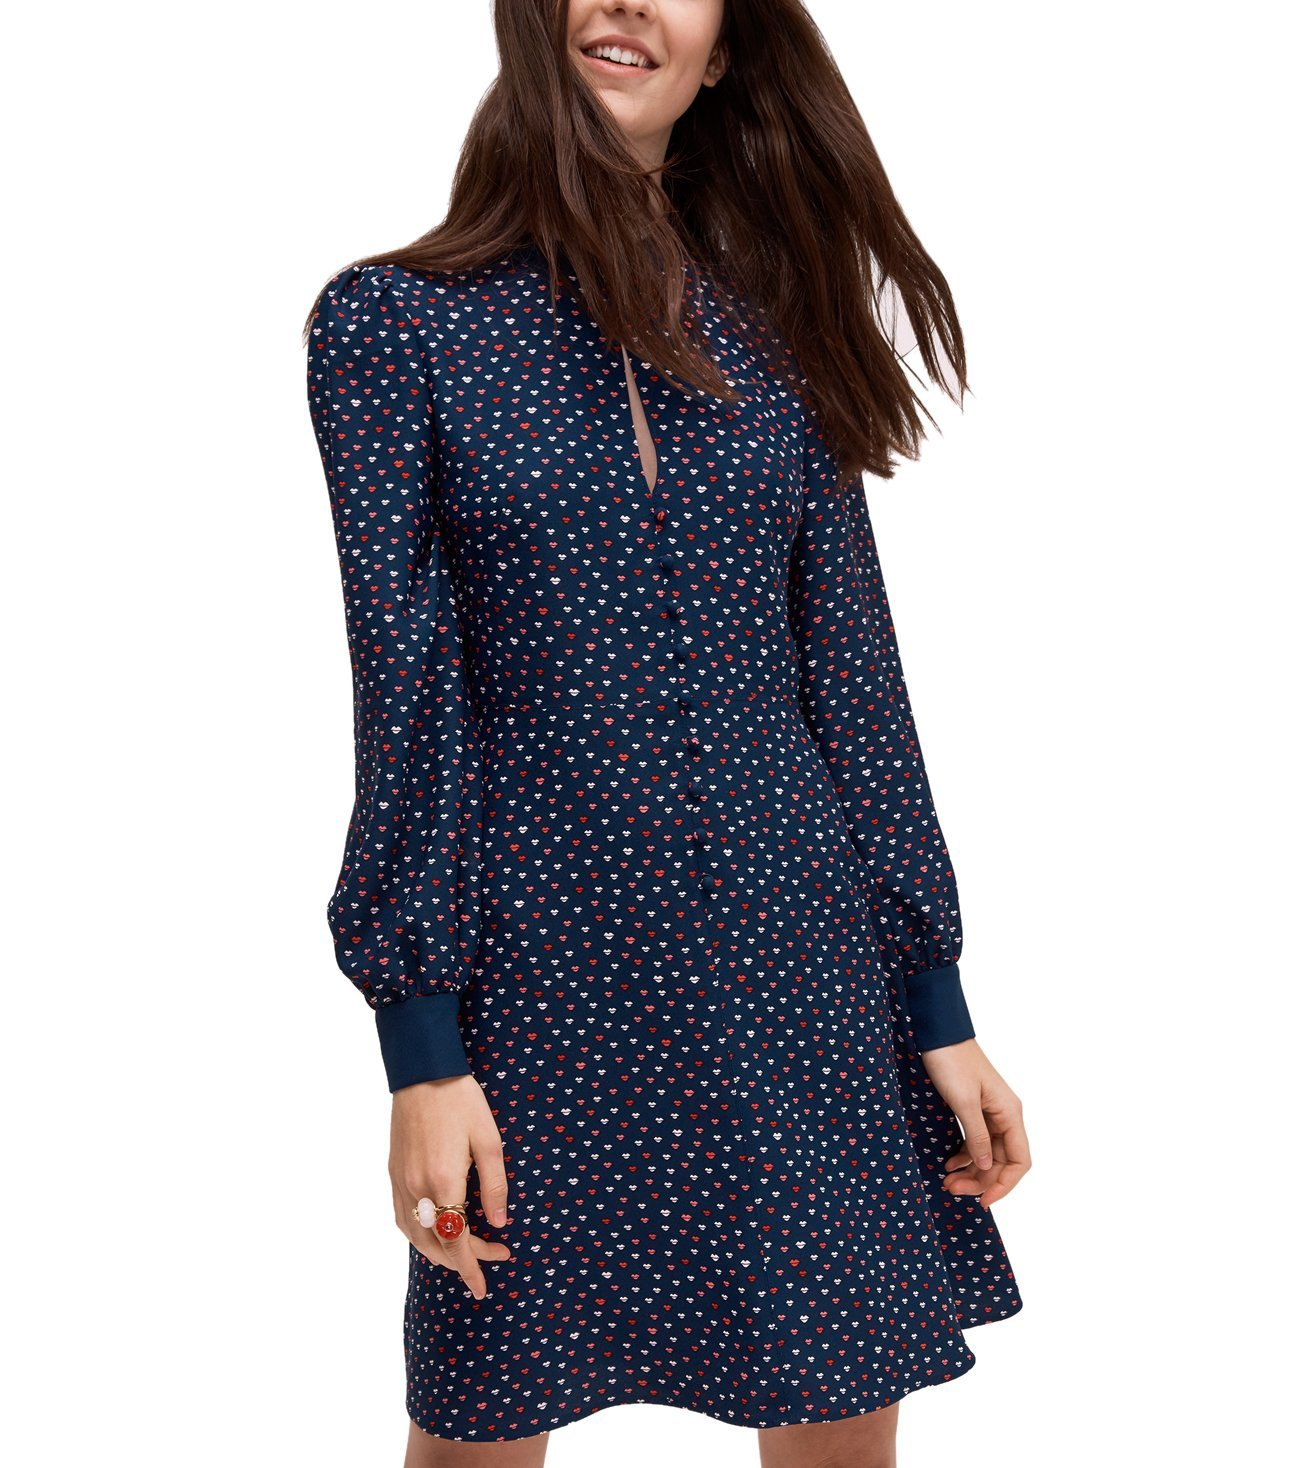 KATE SPADE PRISIAN NAVY LIPS CREPE DRESS